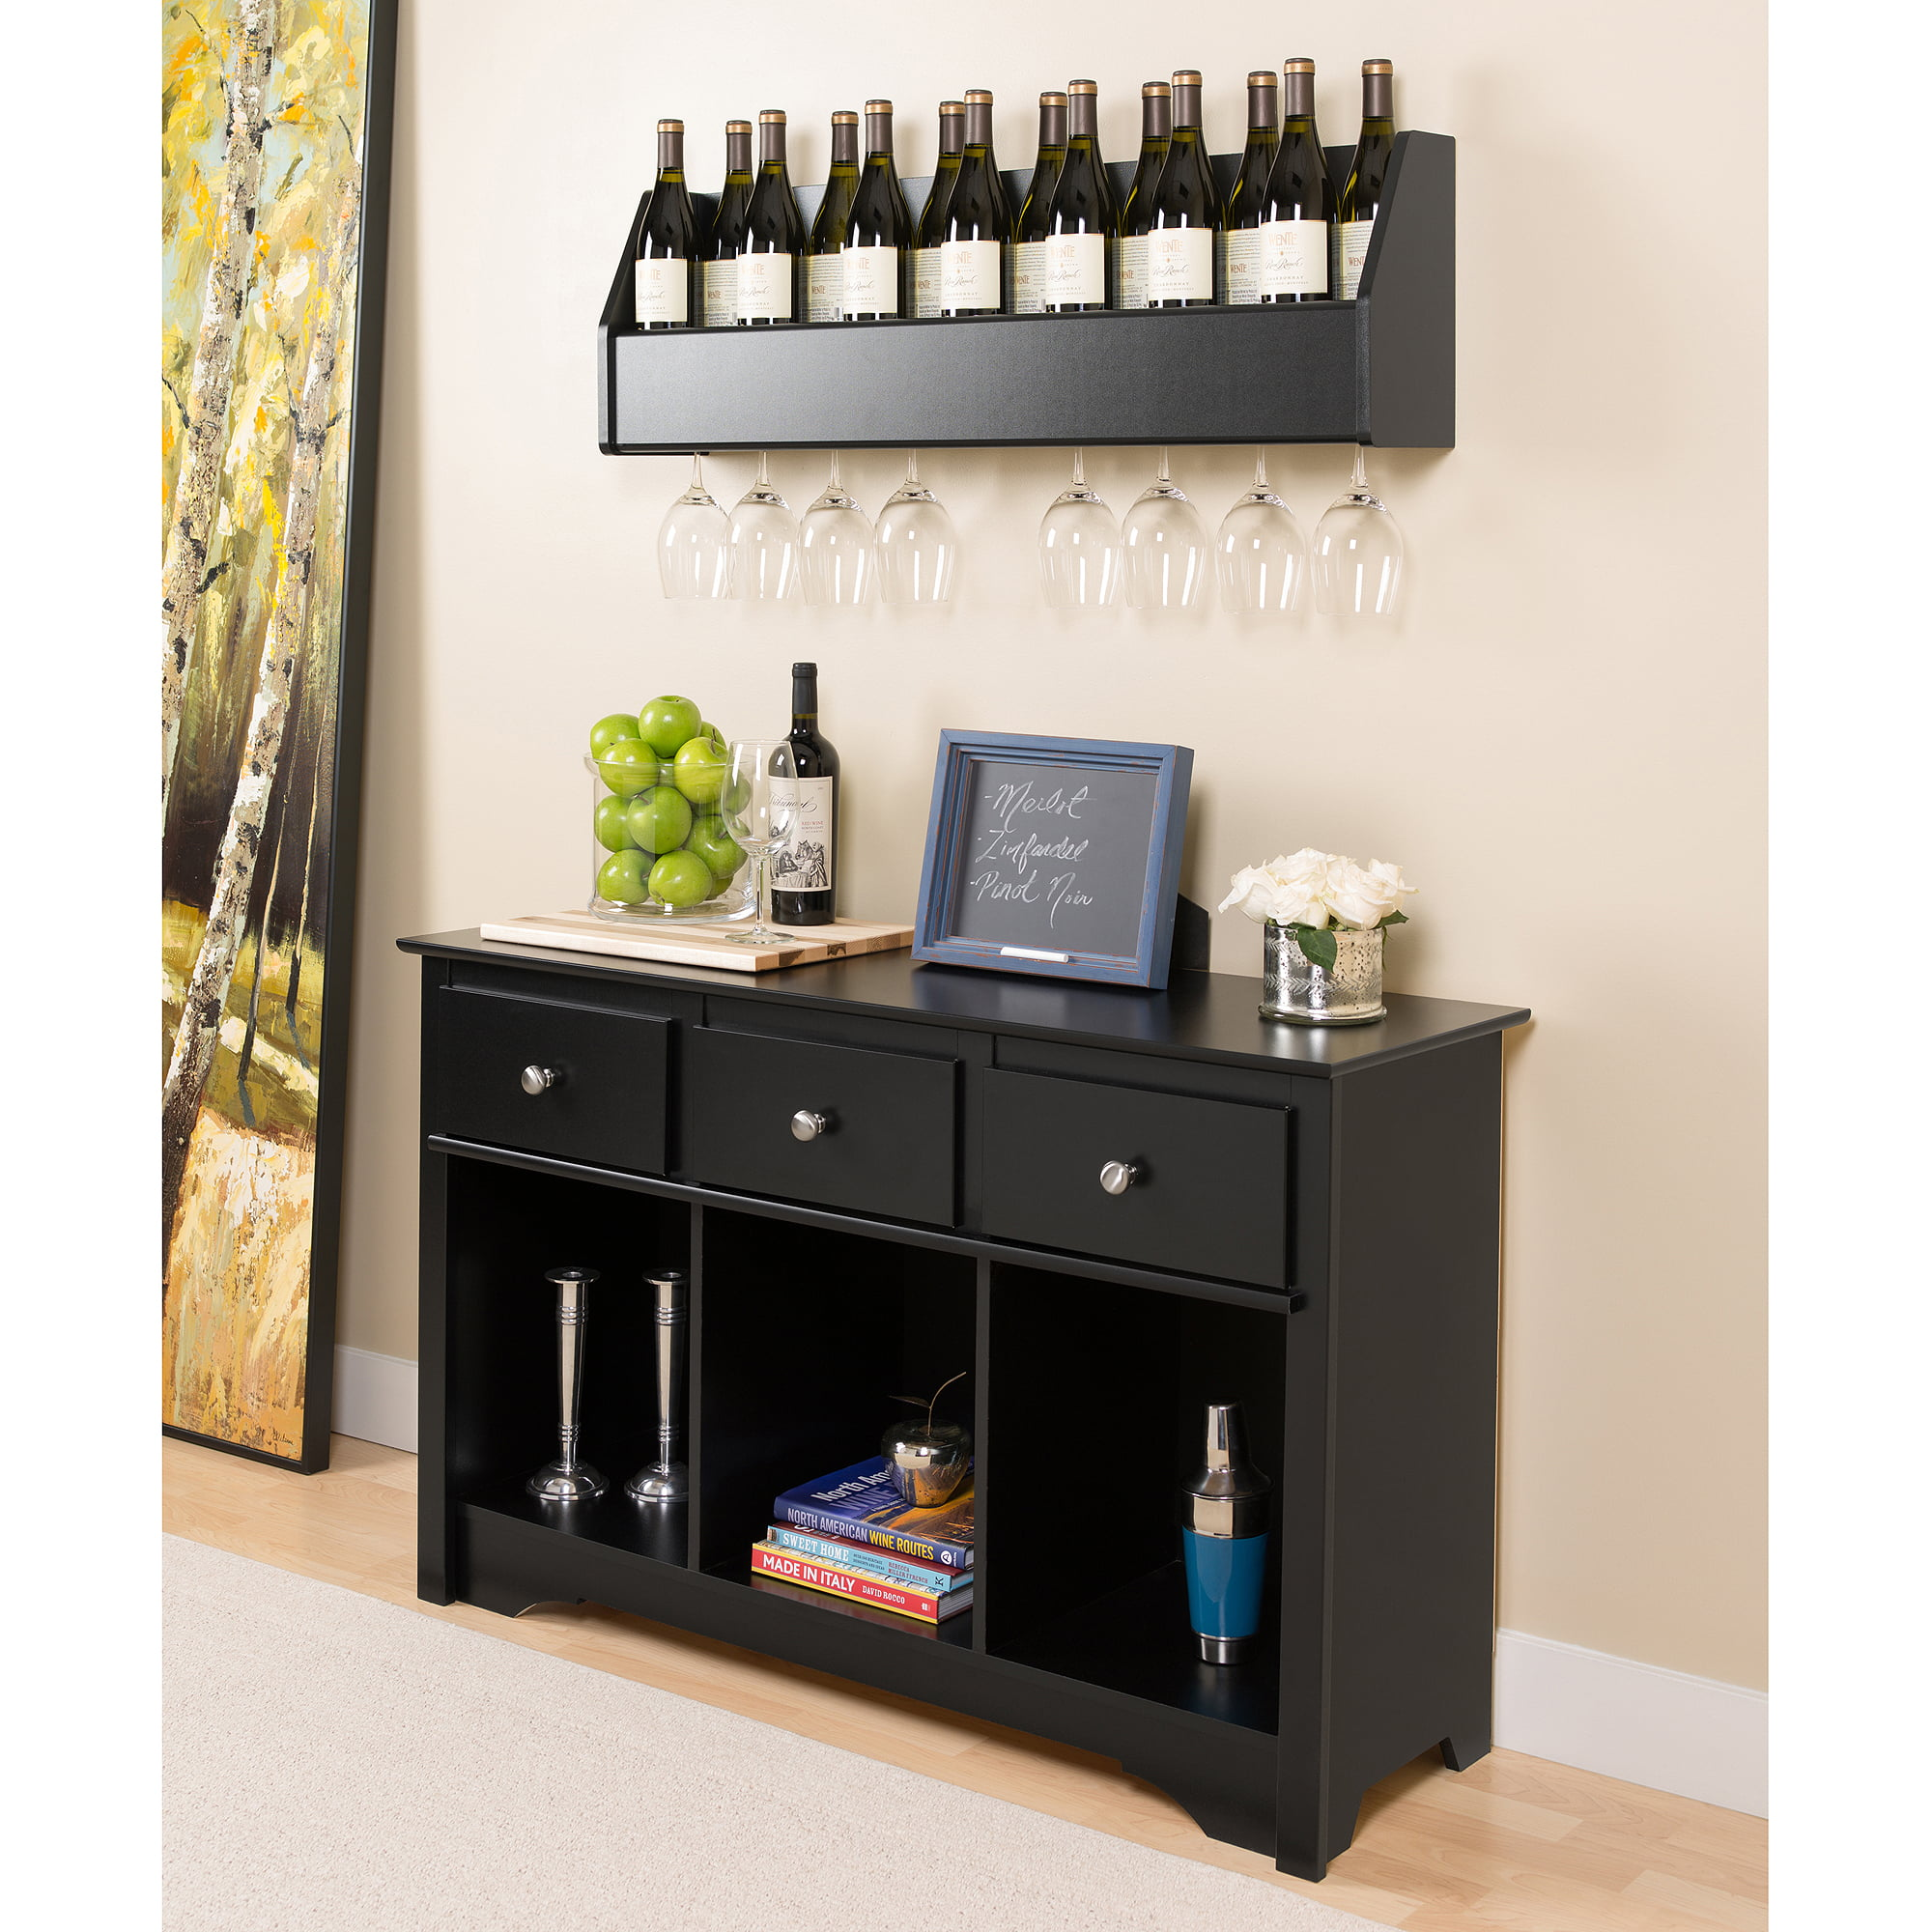 Wall Cabinet Wine Rack Home Decor